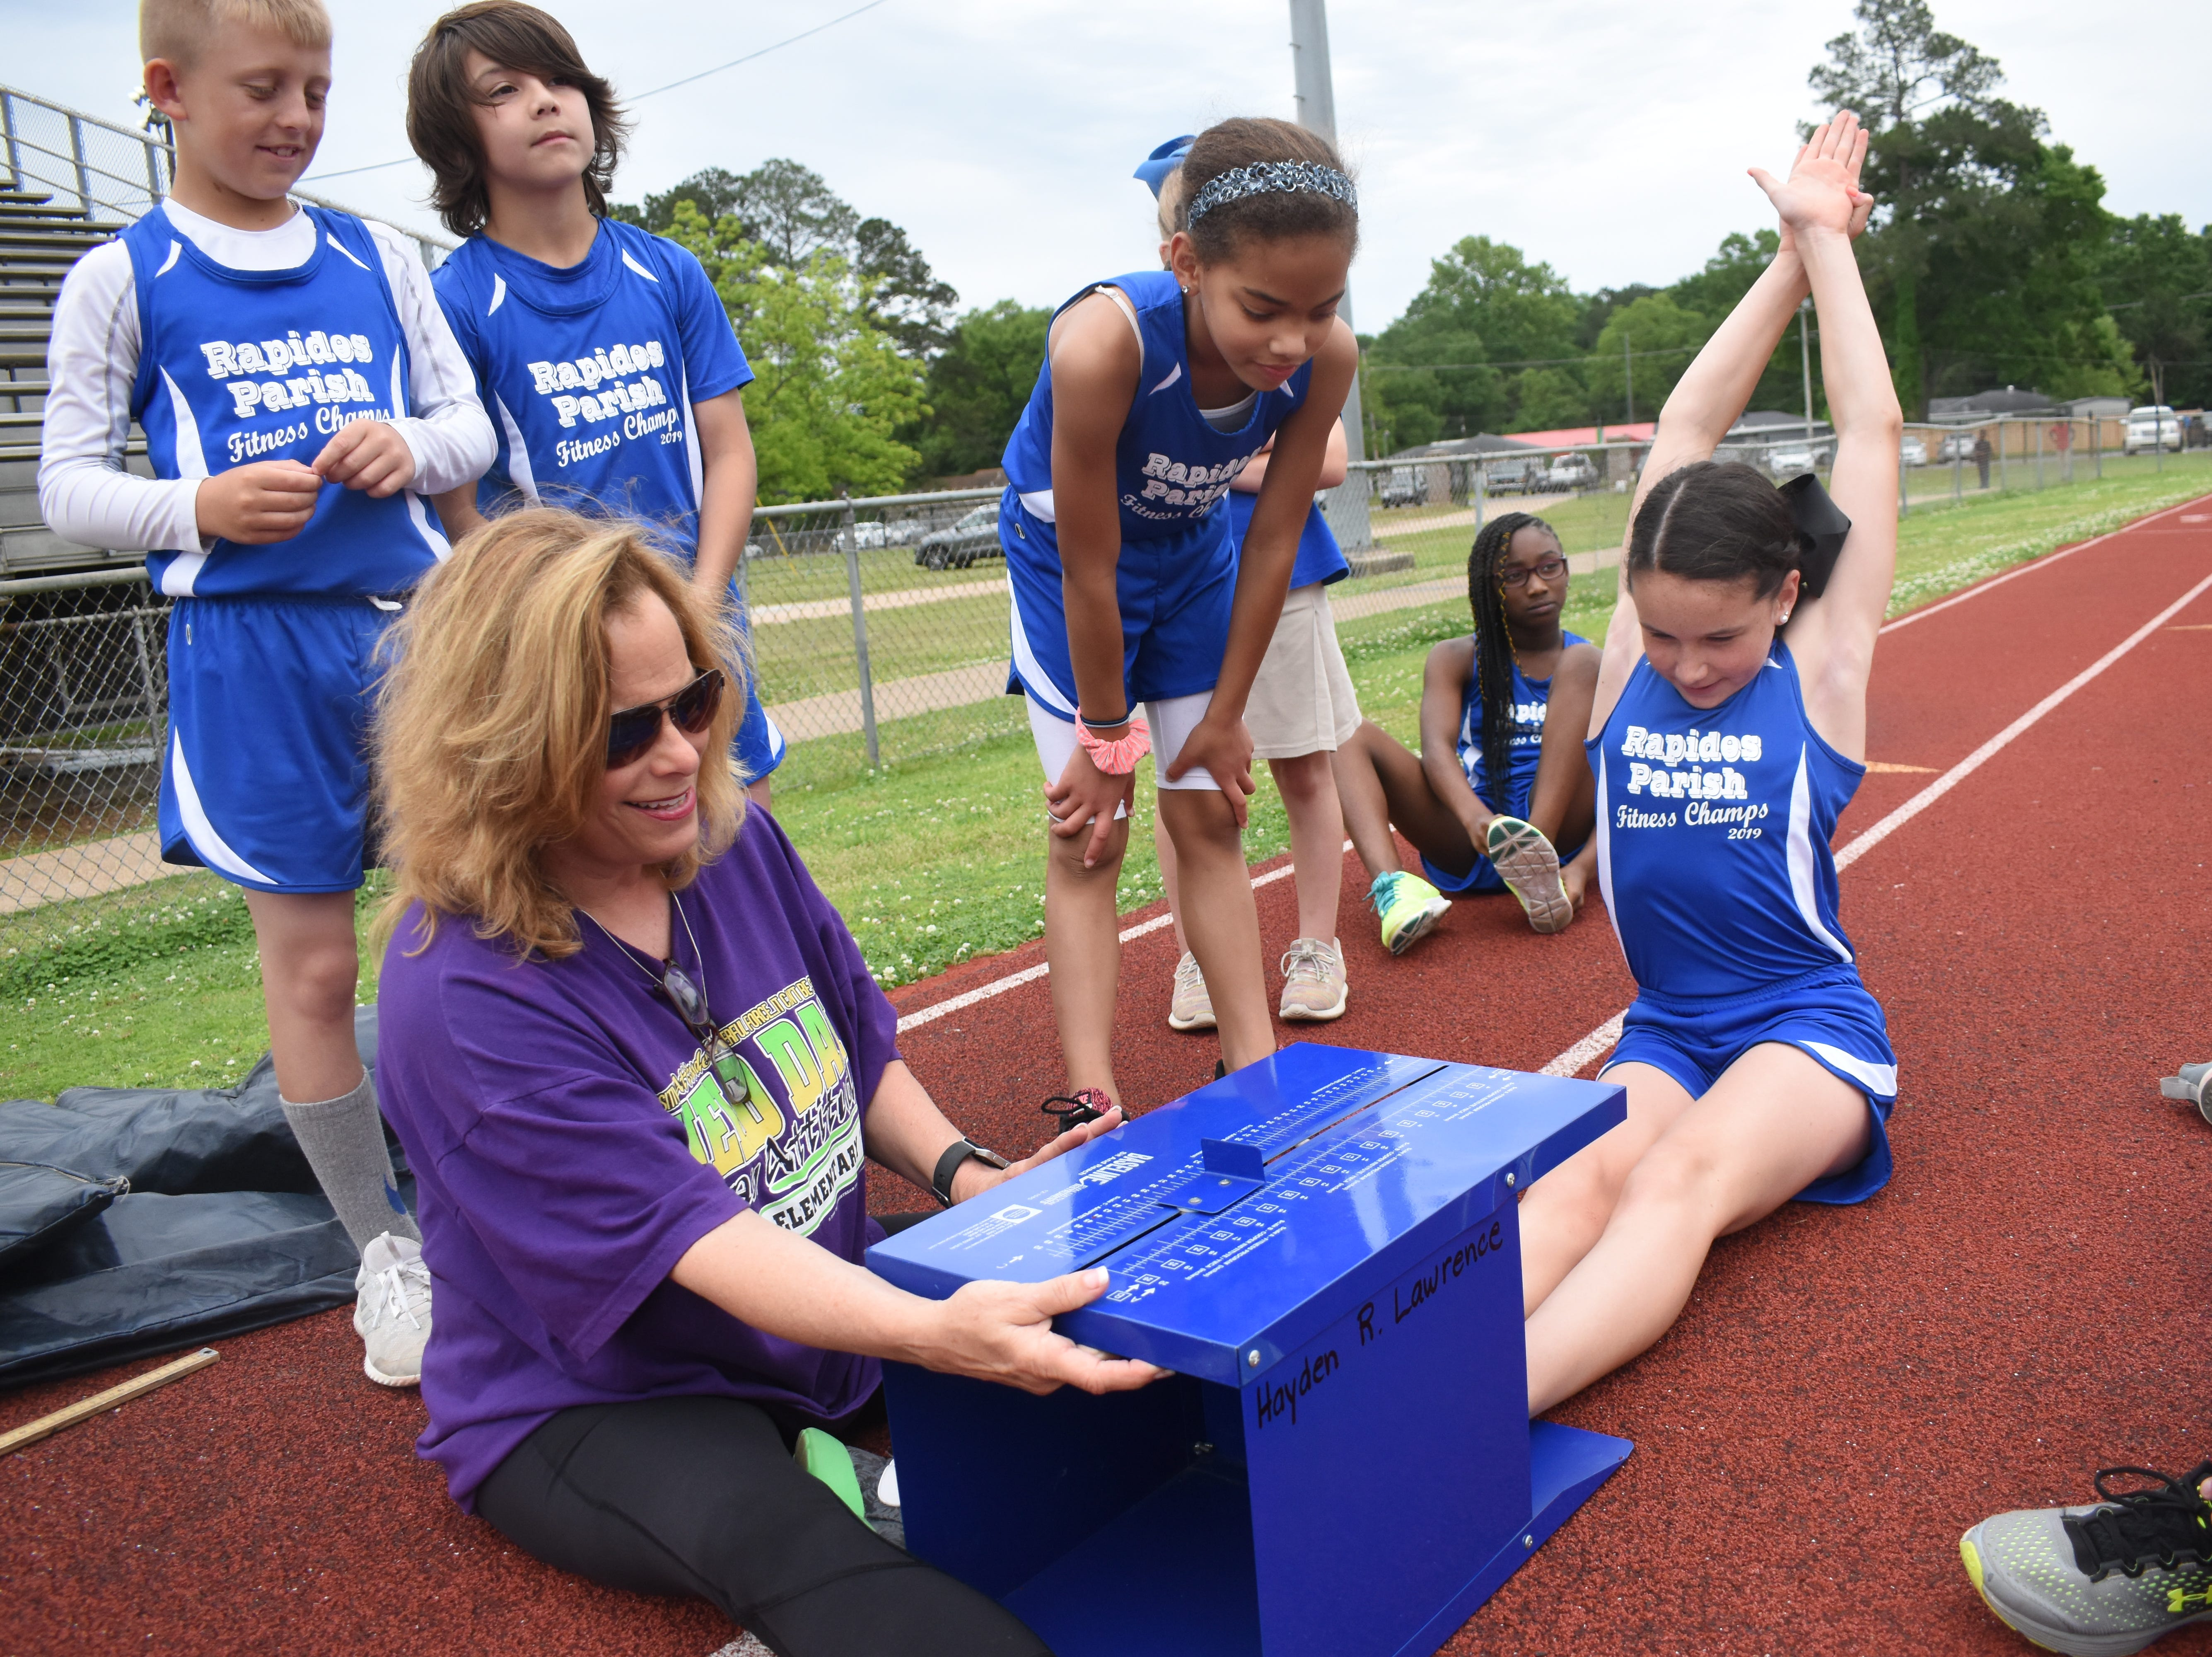 Margaret LaBorde, Rapides Parish Fitness team coach and coordinator (left) watches Aubree Davis of Ball Elementary School complete a sit and reach. Aubree and other five other Rapides Parish elementary school students will compete in the 2019 State Championship Fitness Meet to be held Saturday, April 27, 2019 at Alexandria Senior High School. The meet is part of the Governor's Council on Fitness and Sports. Students from throughout Louisiana will compete in seven events: 50-yard dash, sit and reach, pull-ups,  shuttle run, curl-ups (sit-ups), standing long jump, and the 600-yard run. For the past three years, the Rapides Parish Fitness Team has placed first at the meet. Dean was the highest scoring boy last year and won the title of 2018 Mr. Fitness for the State of Louisiana. The meet will be from 10 a.m. to 2 p.m.